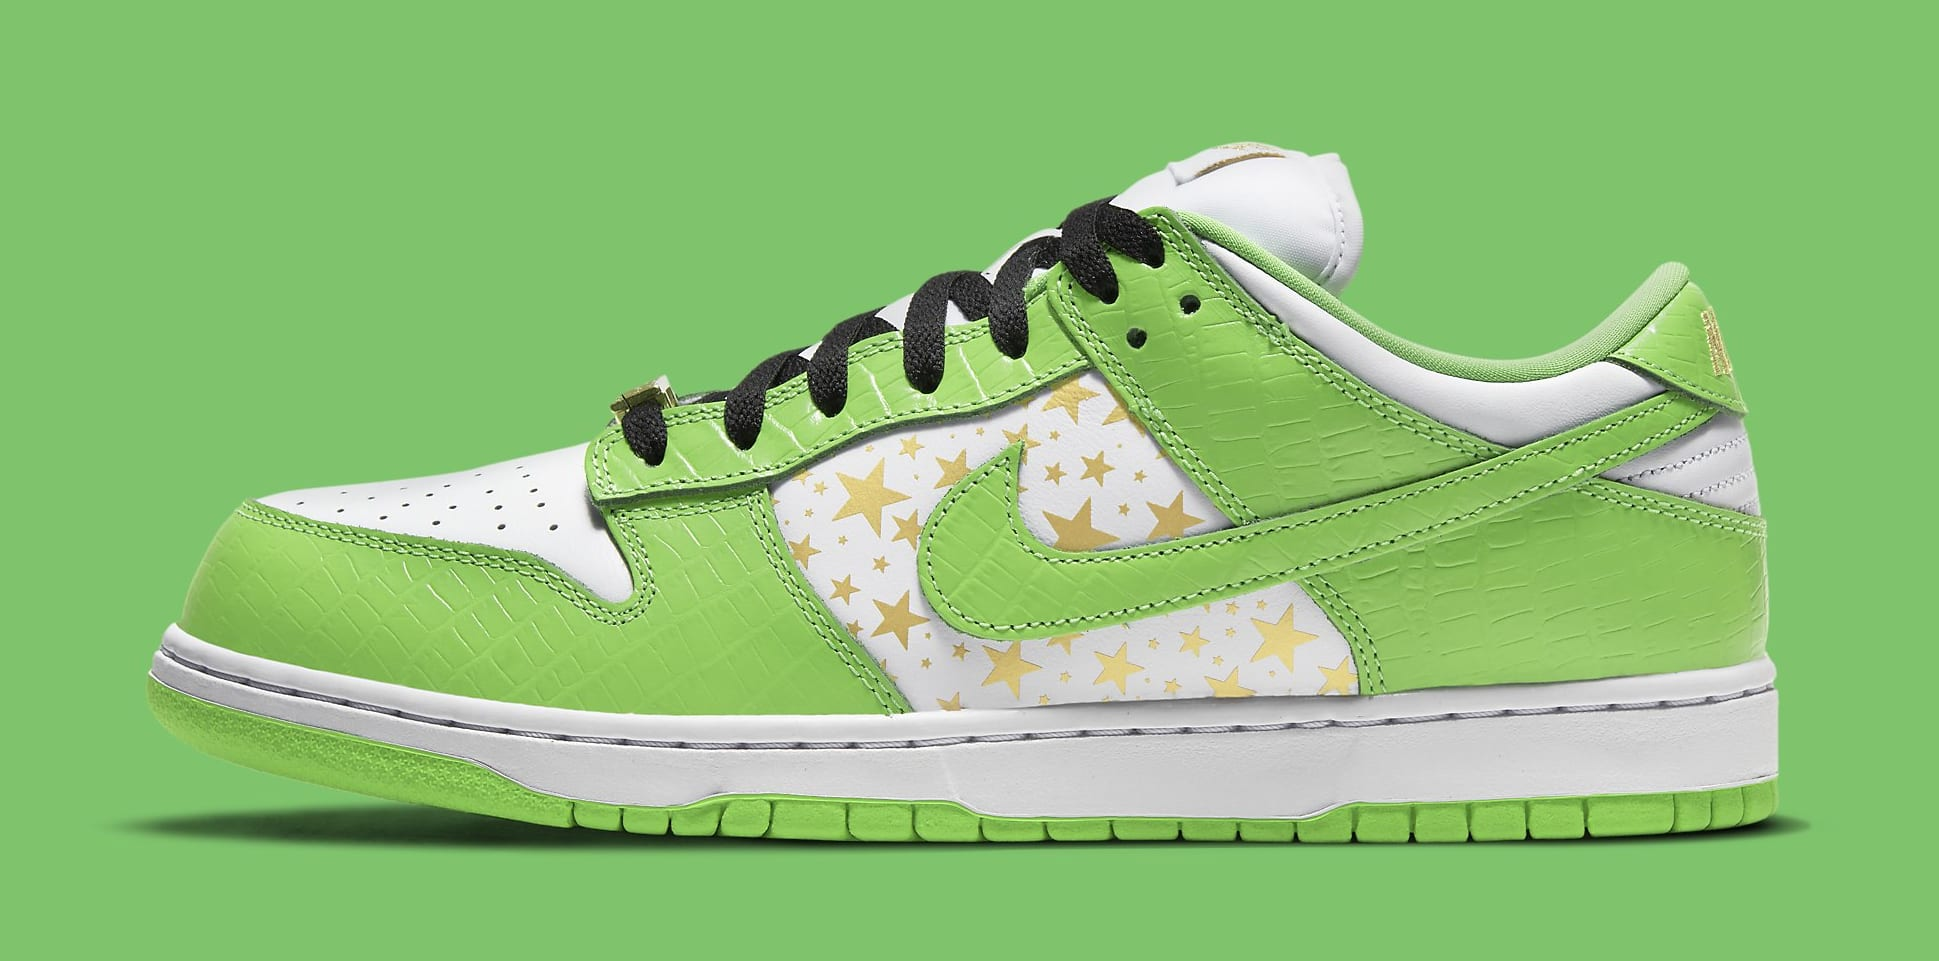 Supreme x Nike SB Dunk Low 'Green' DH3228-101 Lateral